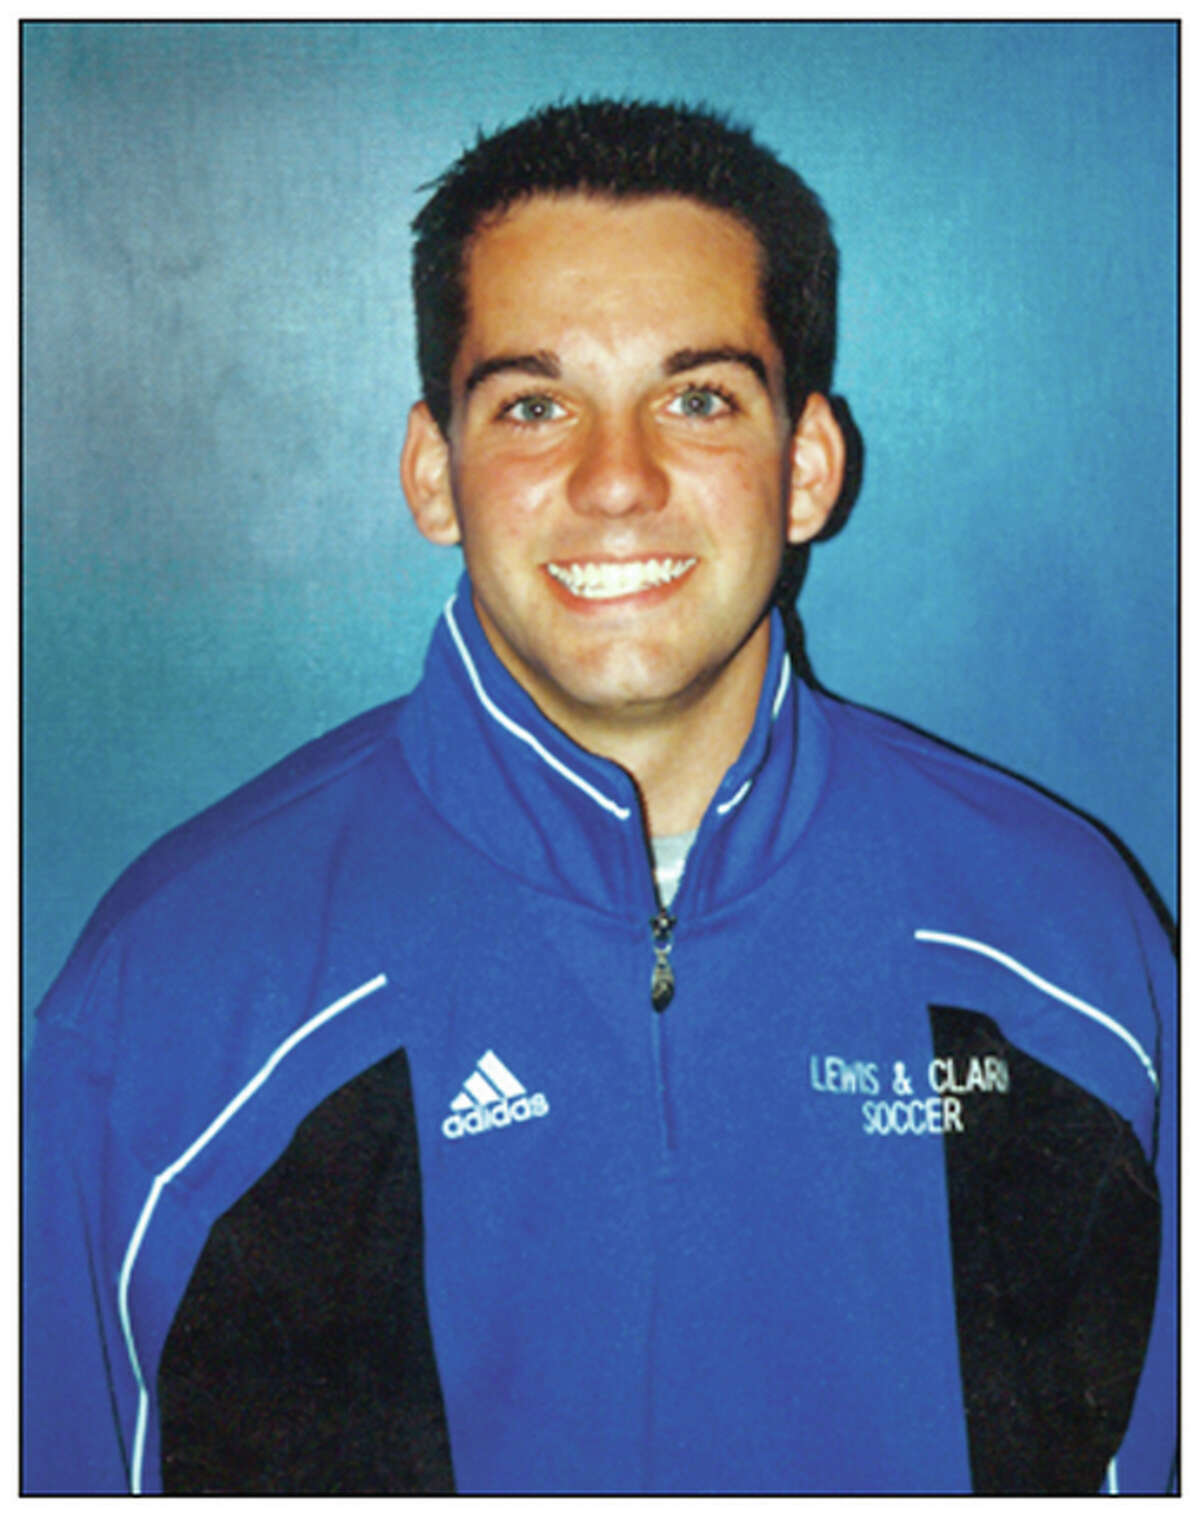 Blake Snyder from his days as a soccer player at Lewis and Clark Community College.